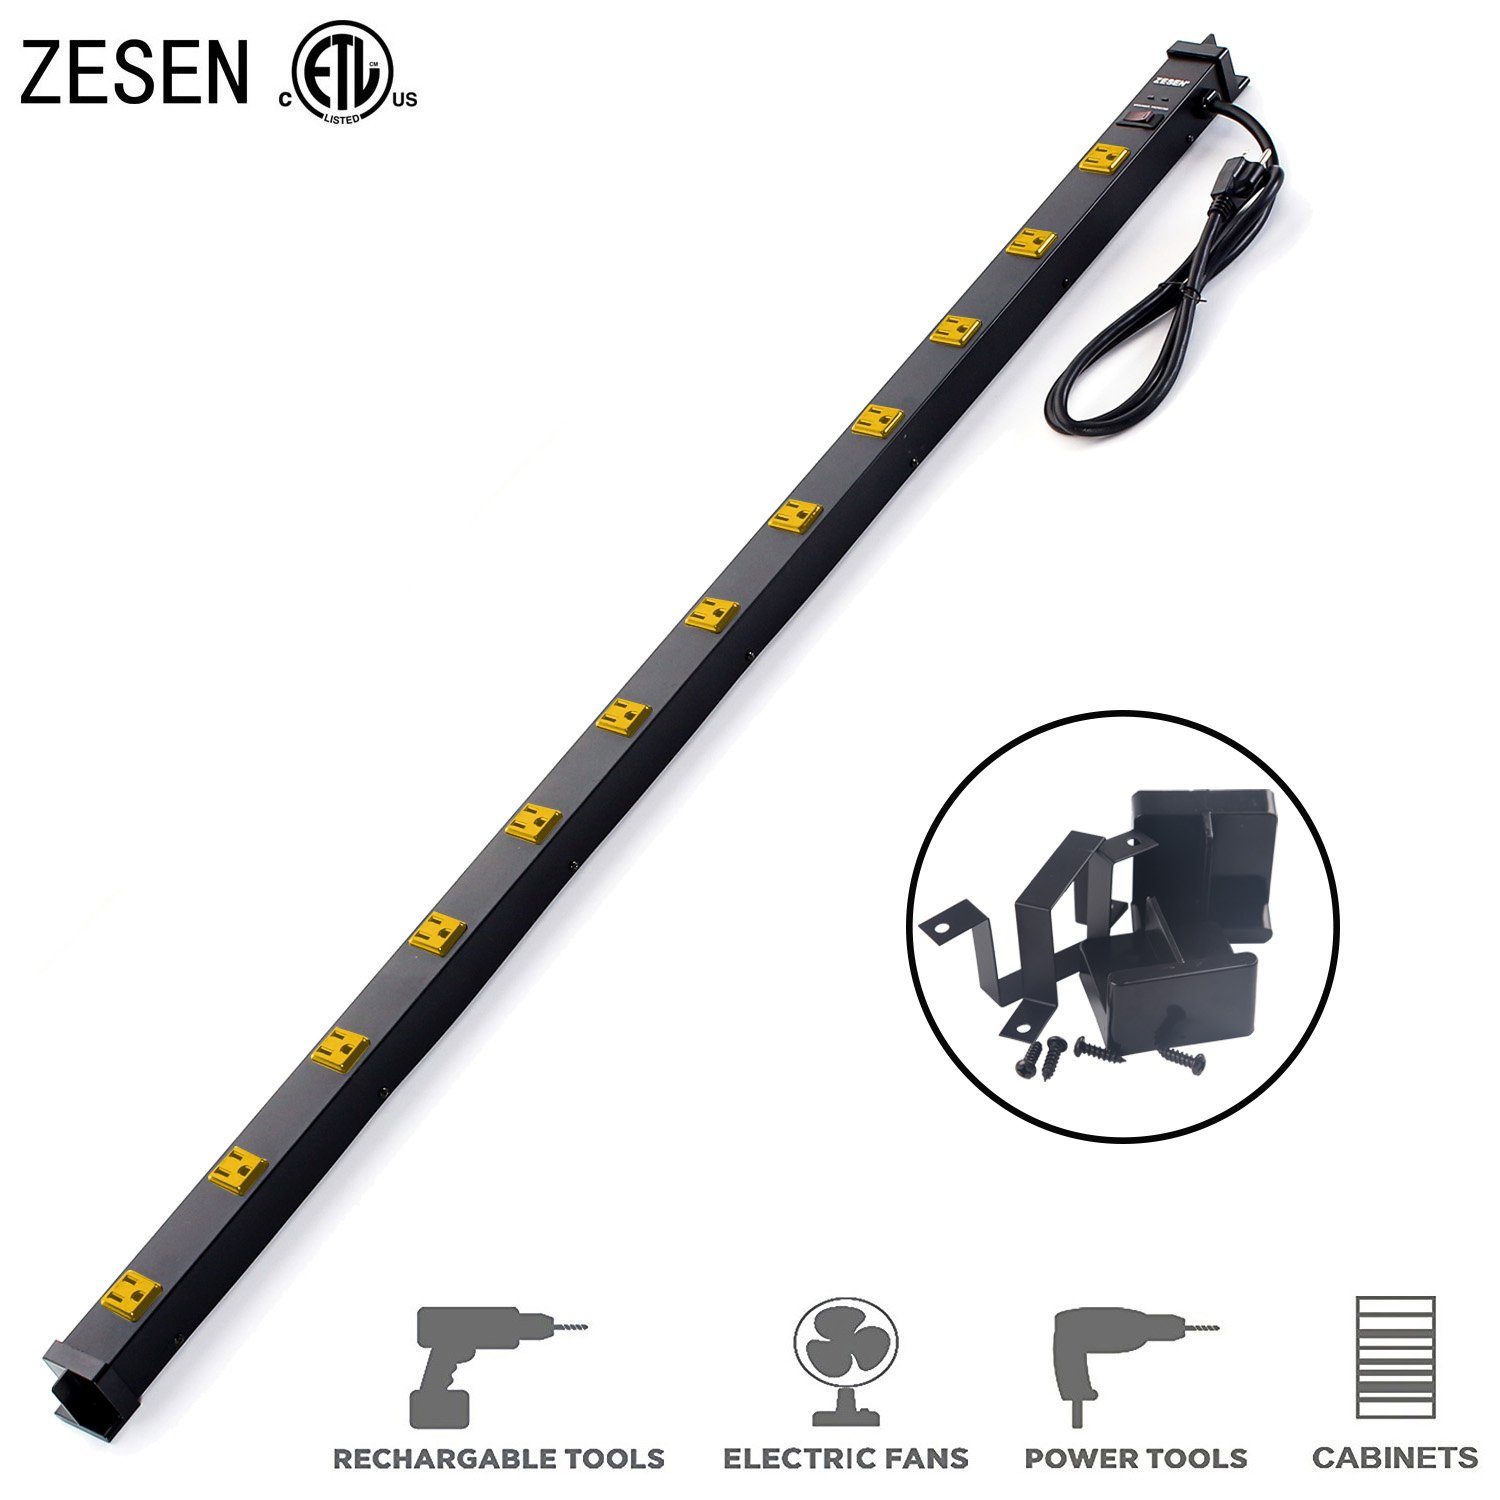 ZESEN 12 Outlet Heavy Duty Workshop Metal Power Strip Surge Protector with 4ft Heavy Duty Cord, ETL Certified, Black by ZESEN